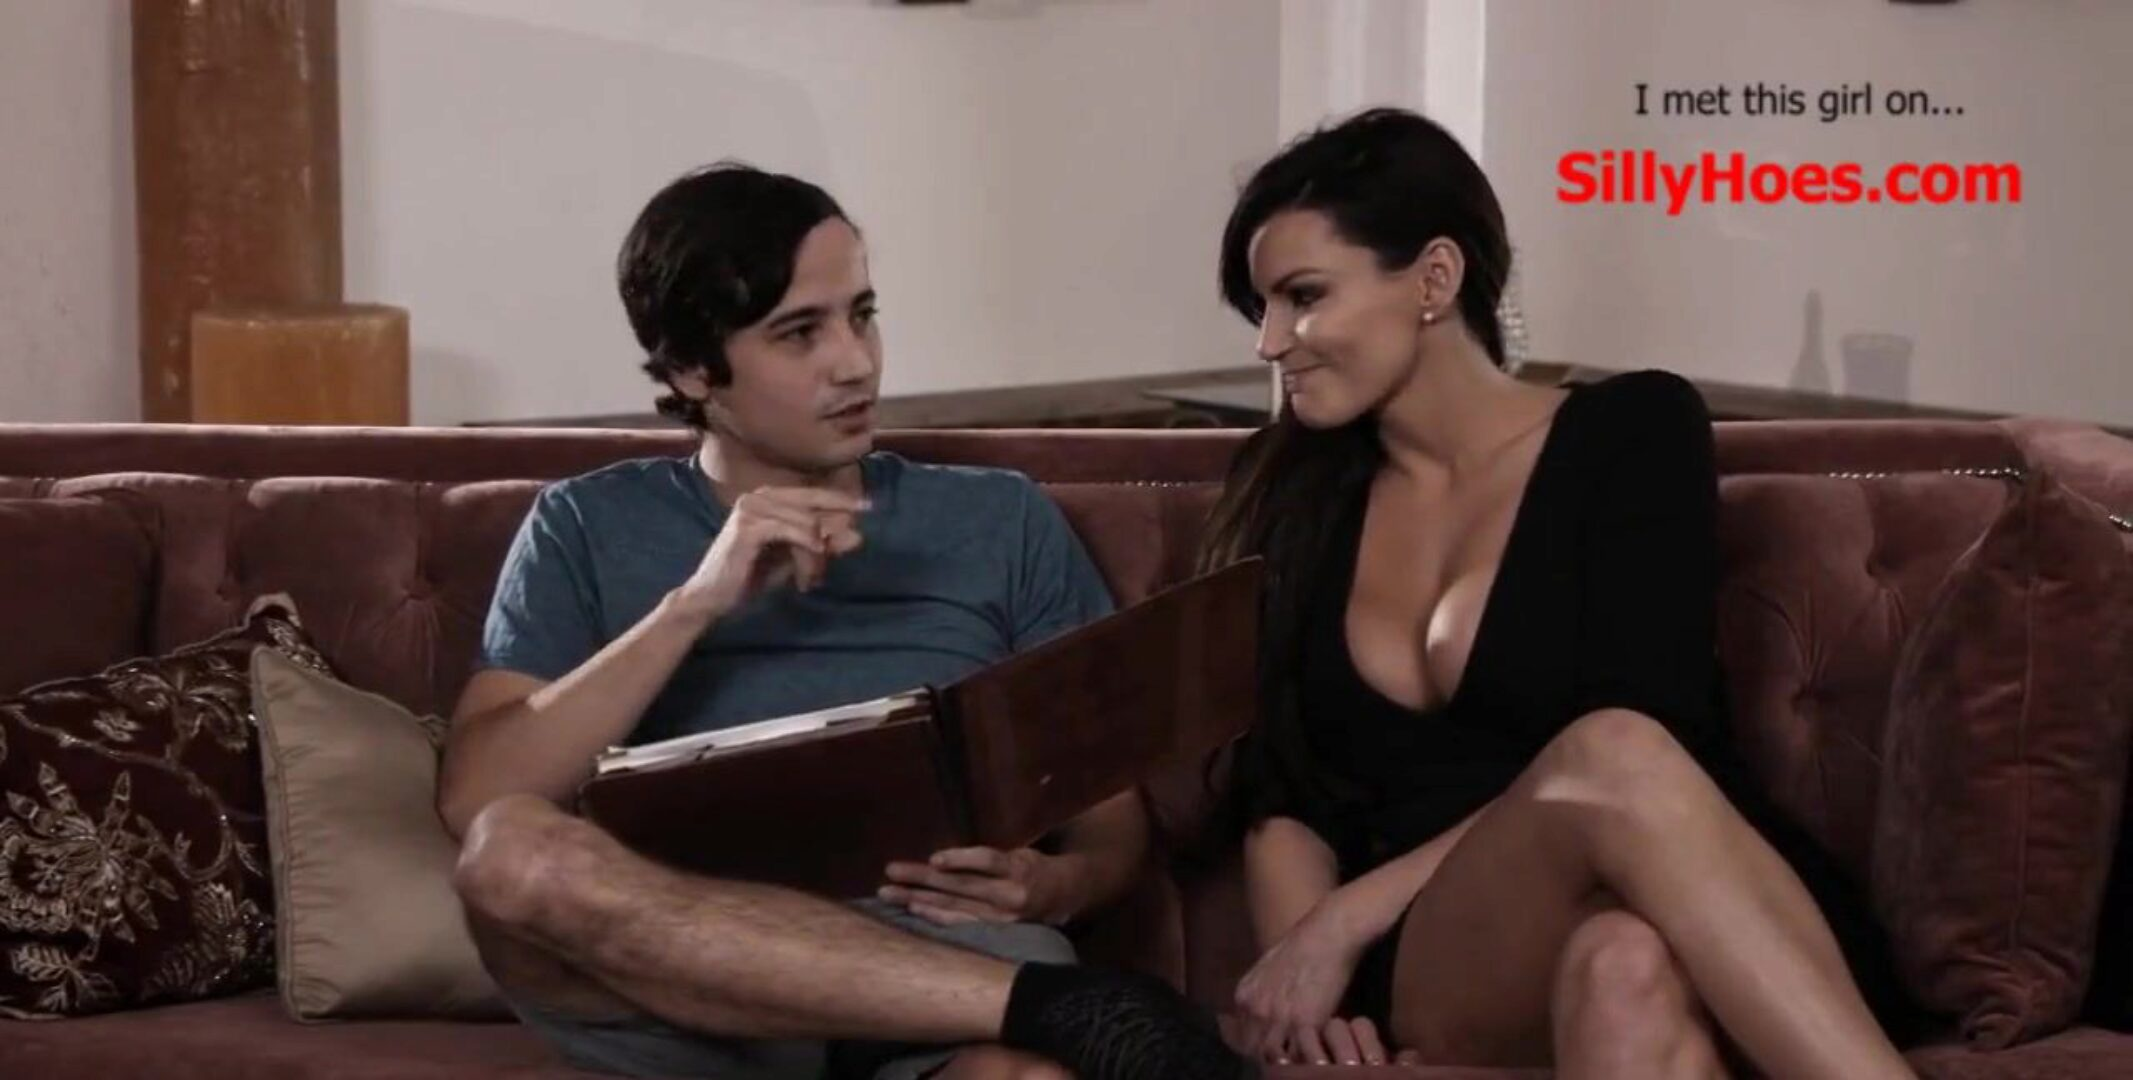 SillyHoes.com - Step Mom Lets Step Son Fuck With No Condom